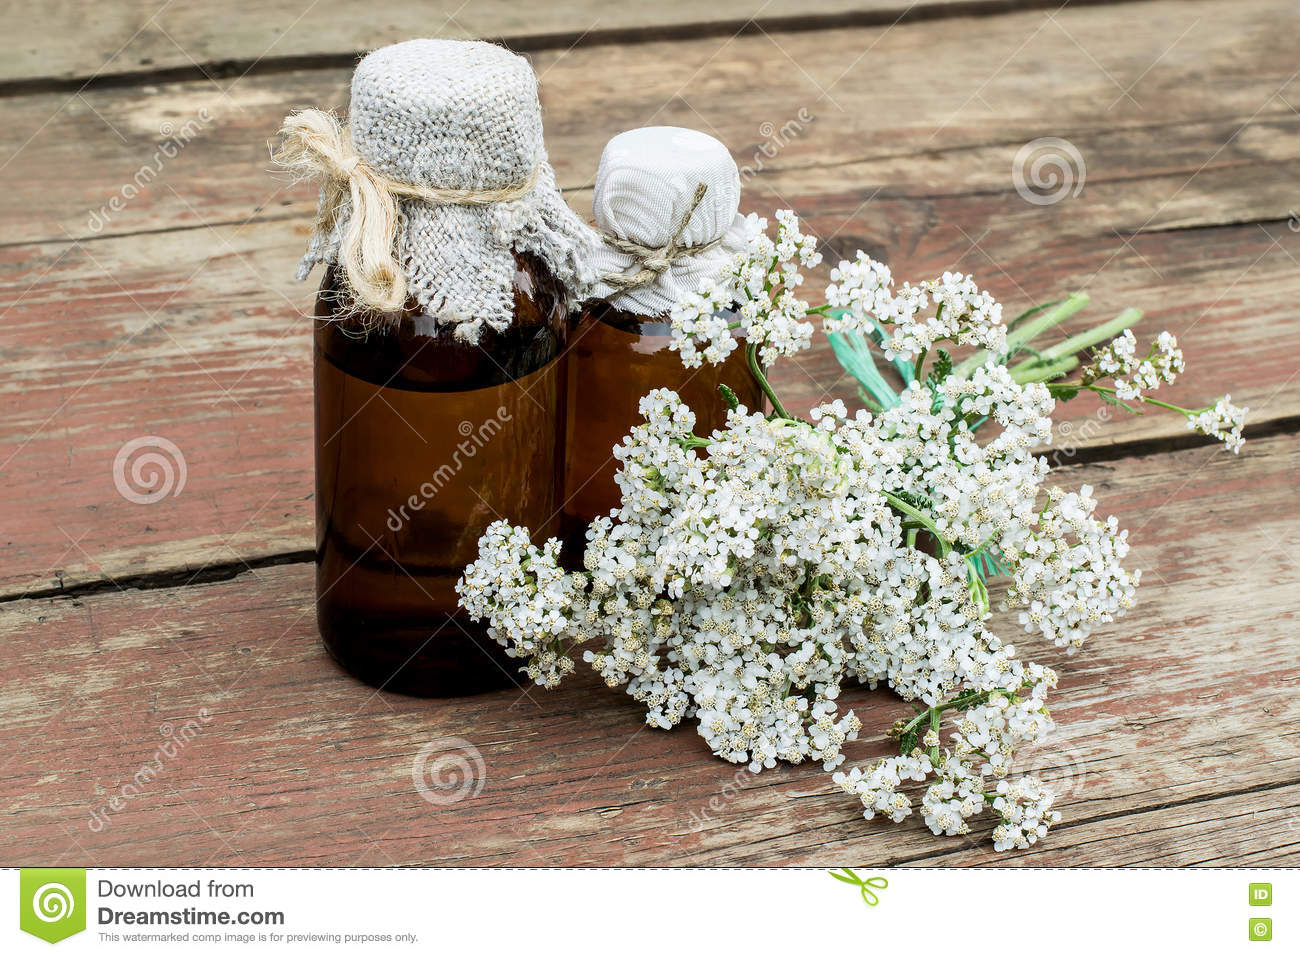 how to make yarrow tincture